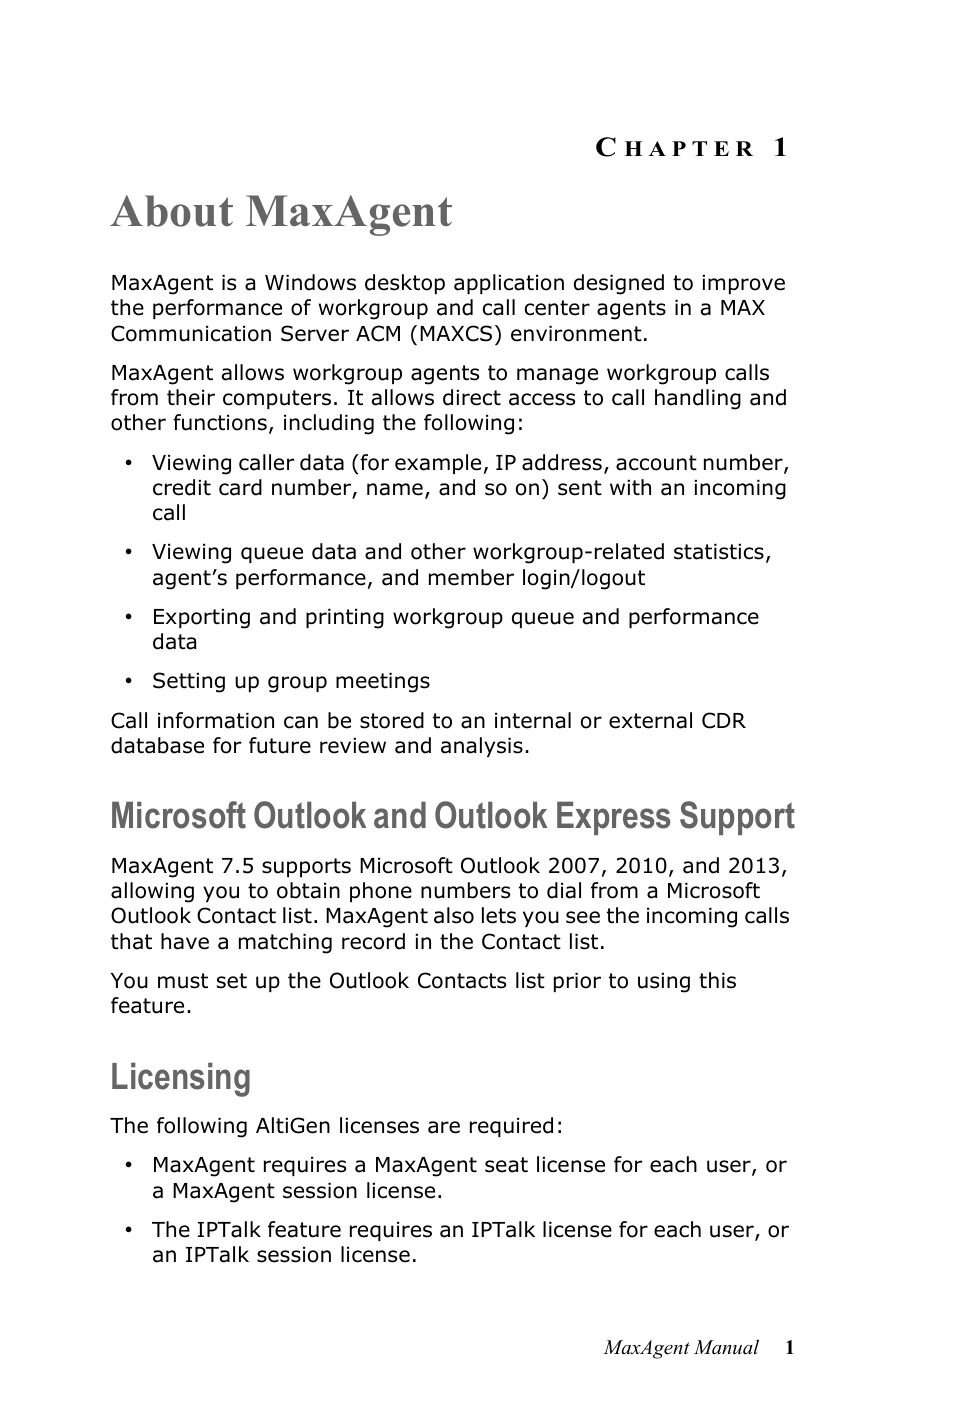 About maxagent, Microsoft outlook and outlook express